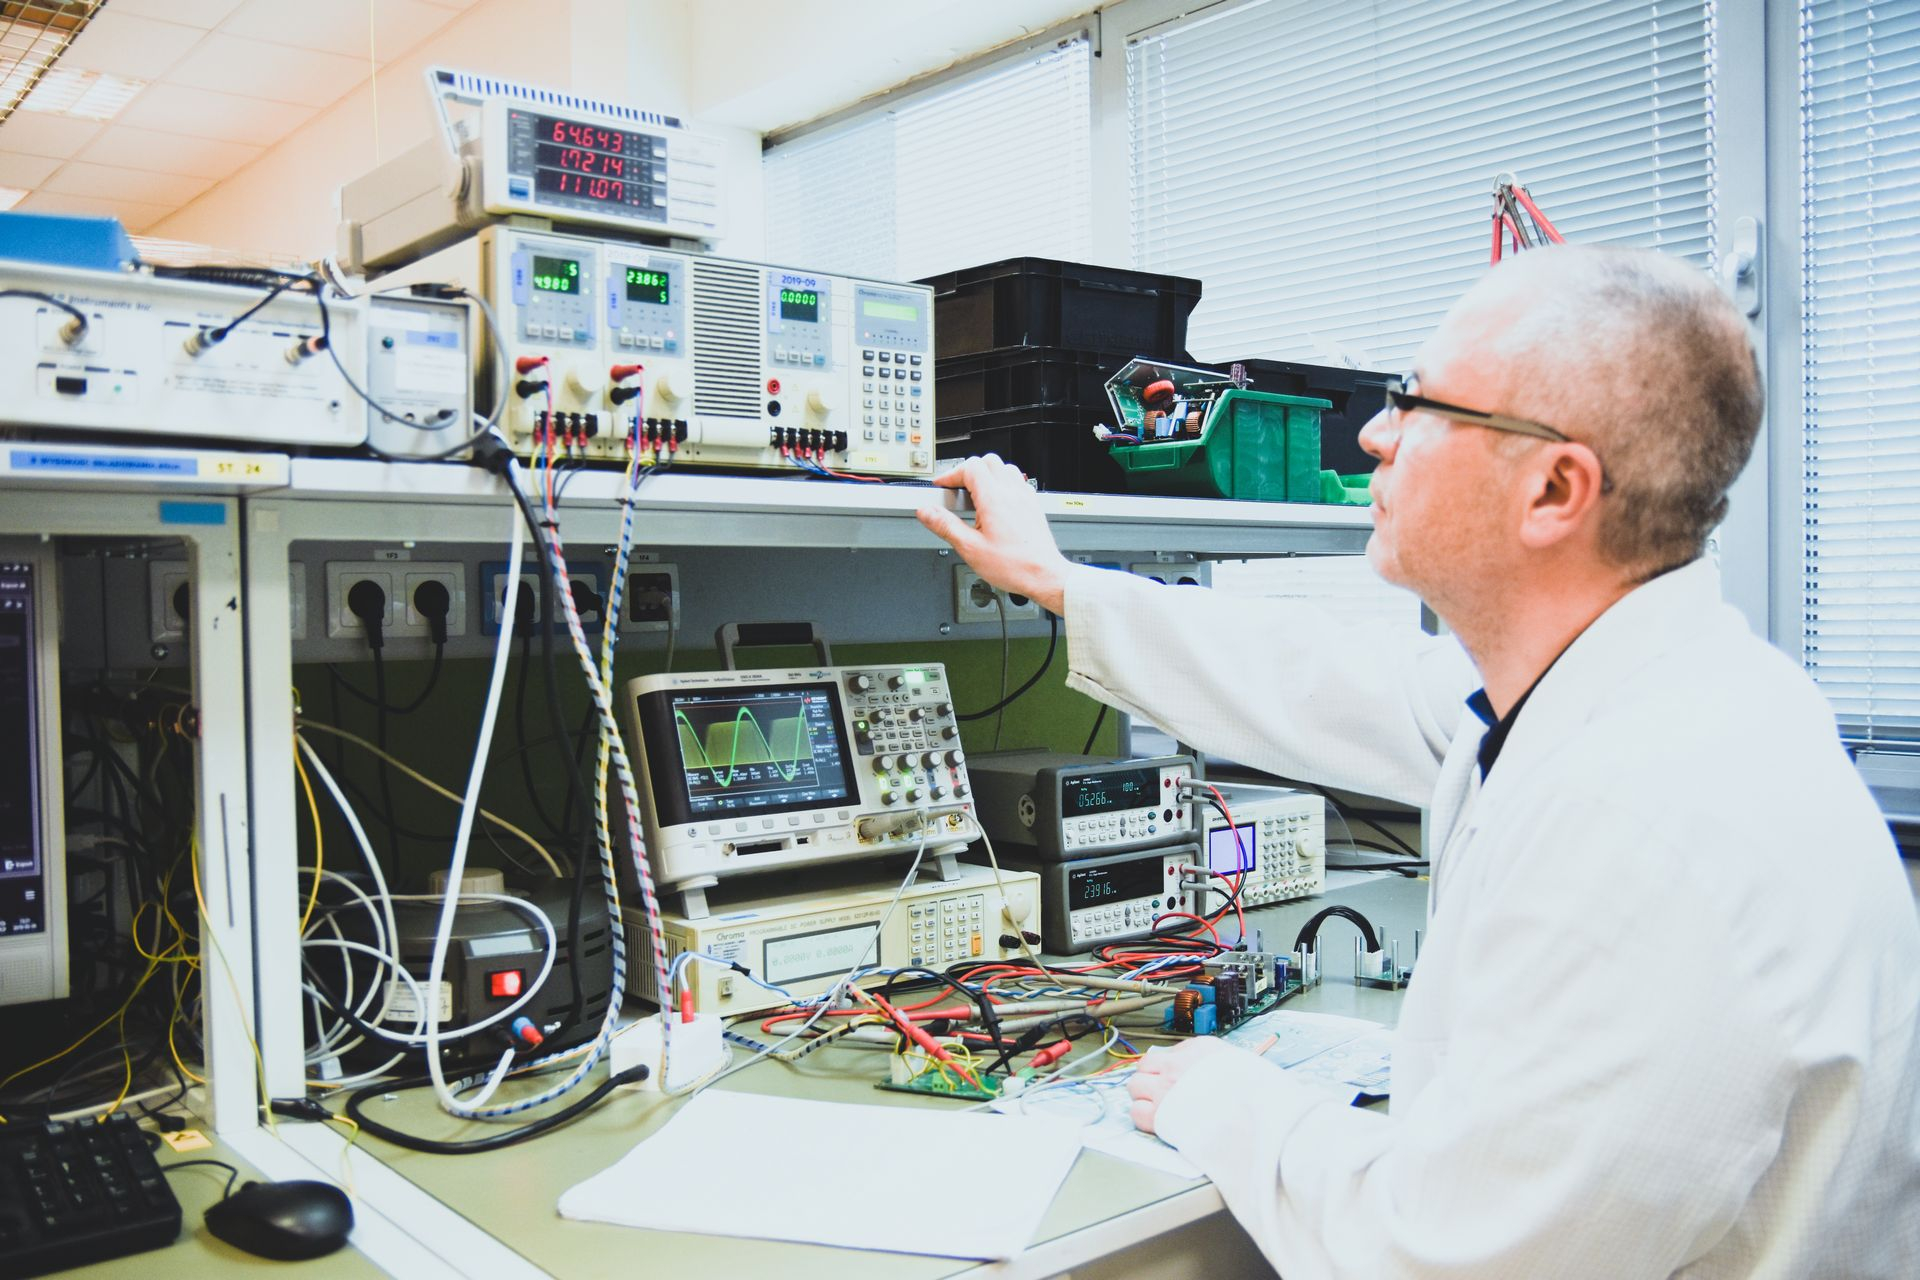 senior-hardware-engineer-testing-the-parameters-of-communication-technology-device